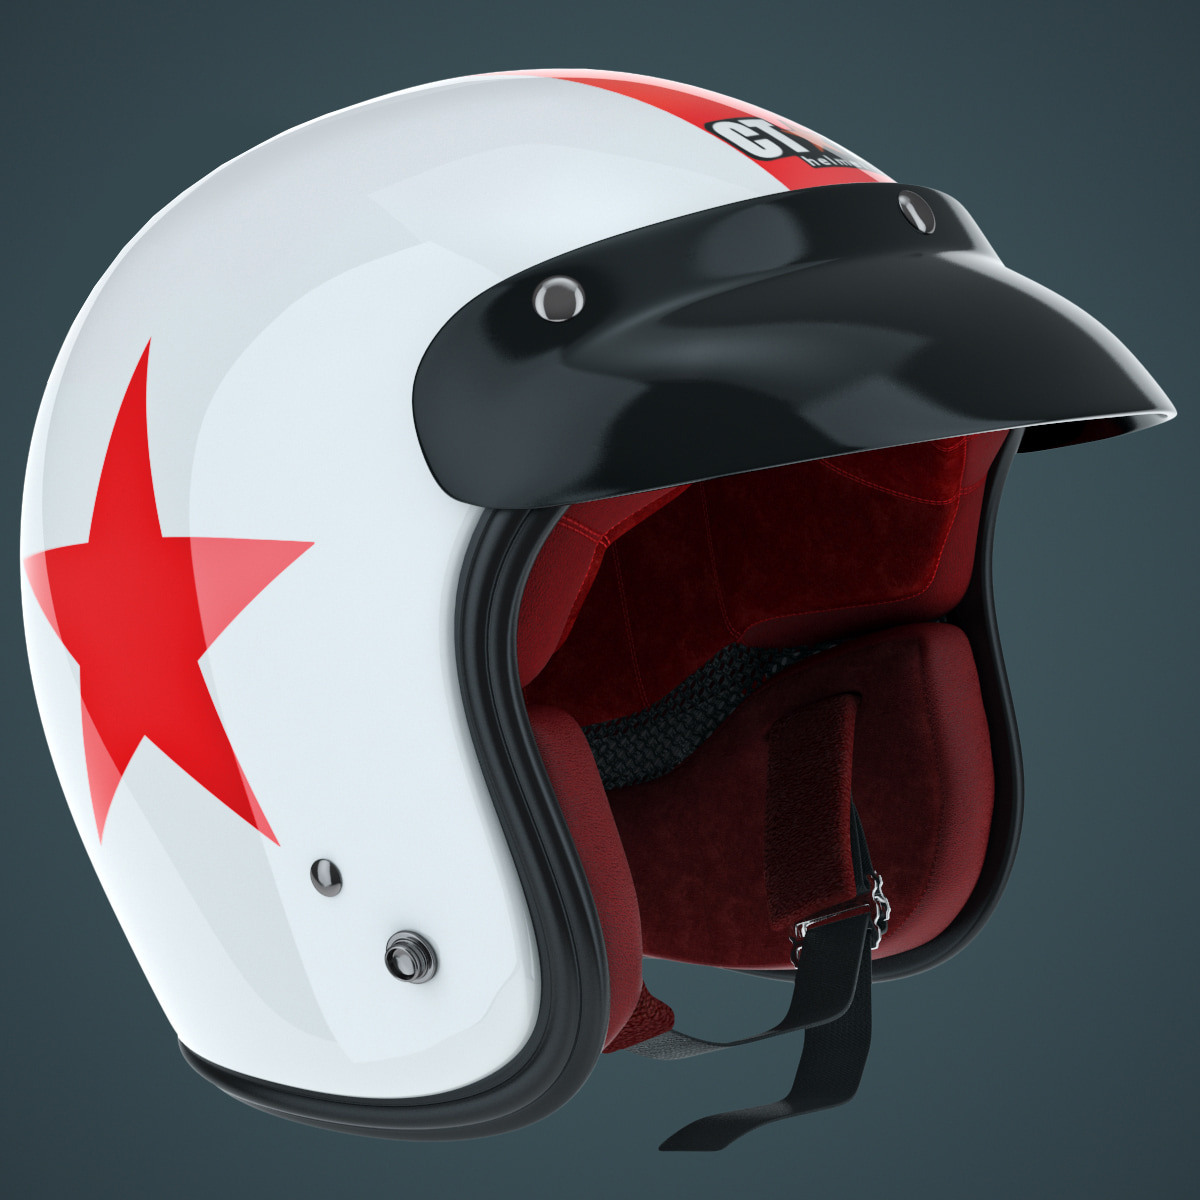 Helmet Ruby_dark_00071.jpg